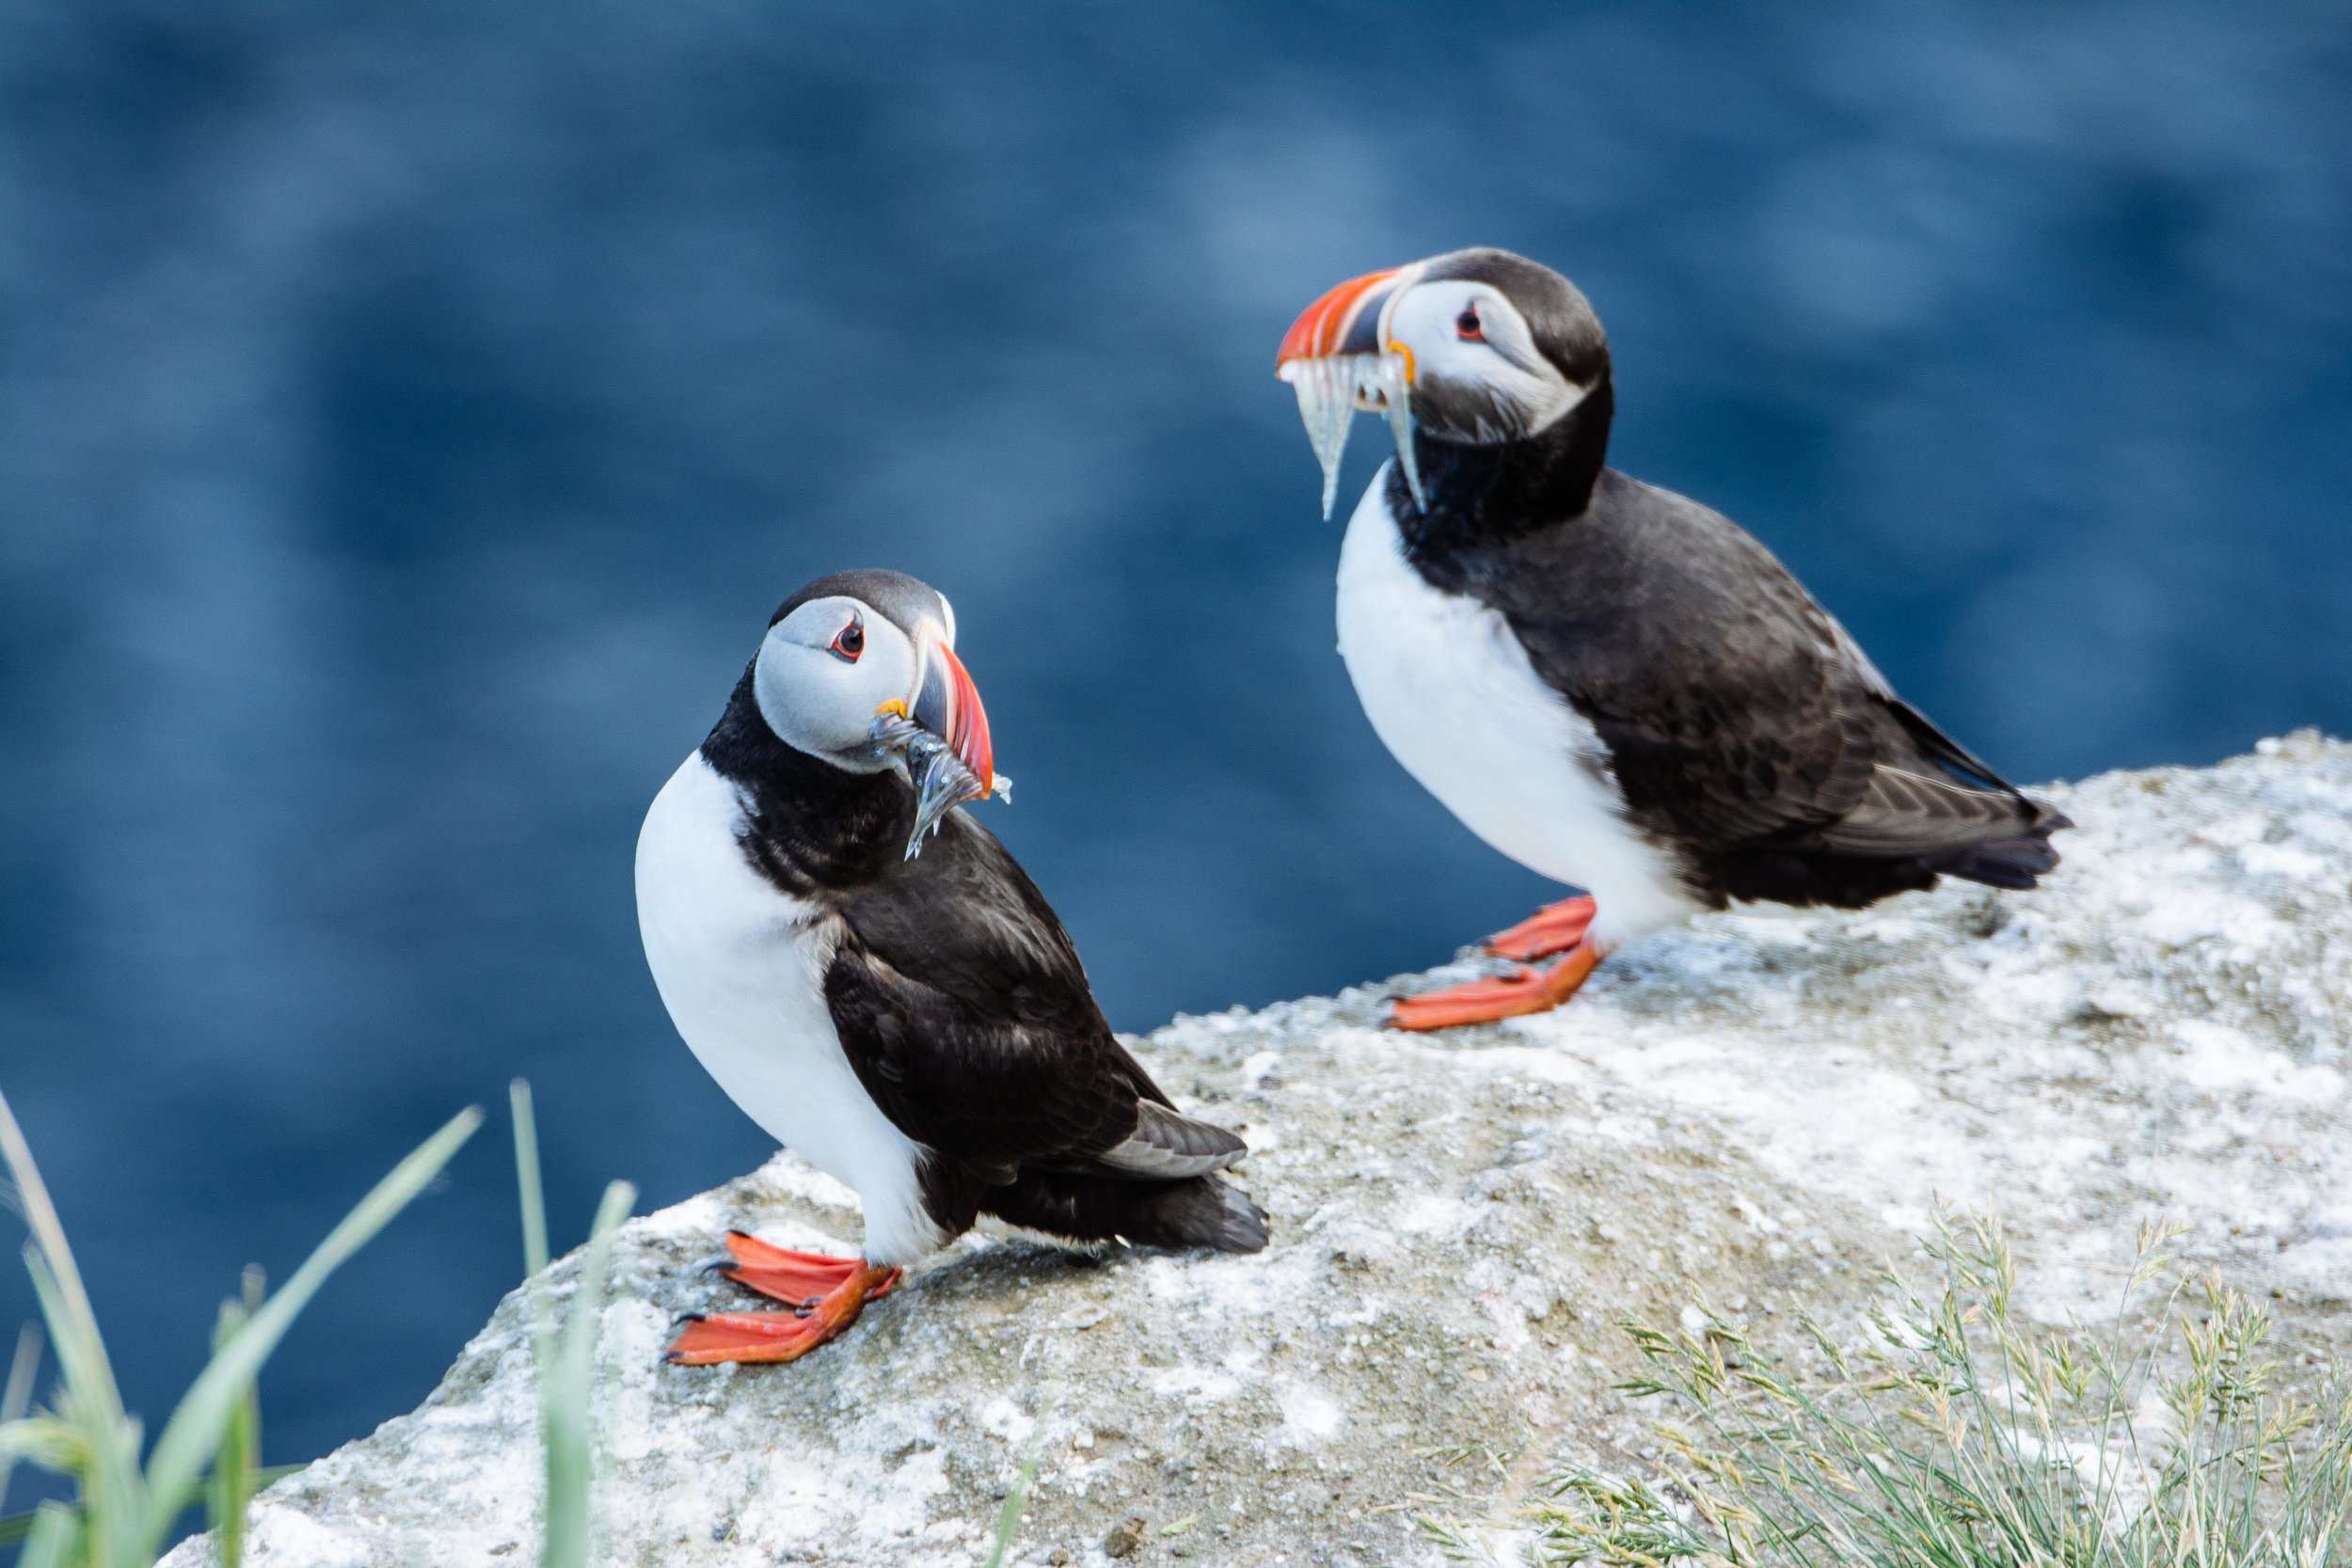 Atlantic Puffins hold multiple fish in their mouths thanks to spine-like structures inside their beaks that prevent the fish from sliding out.